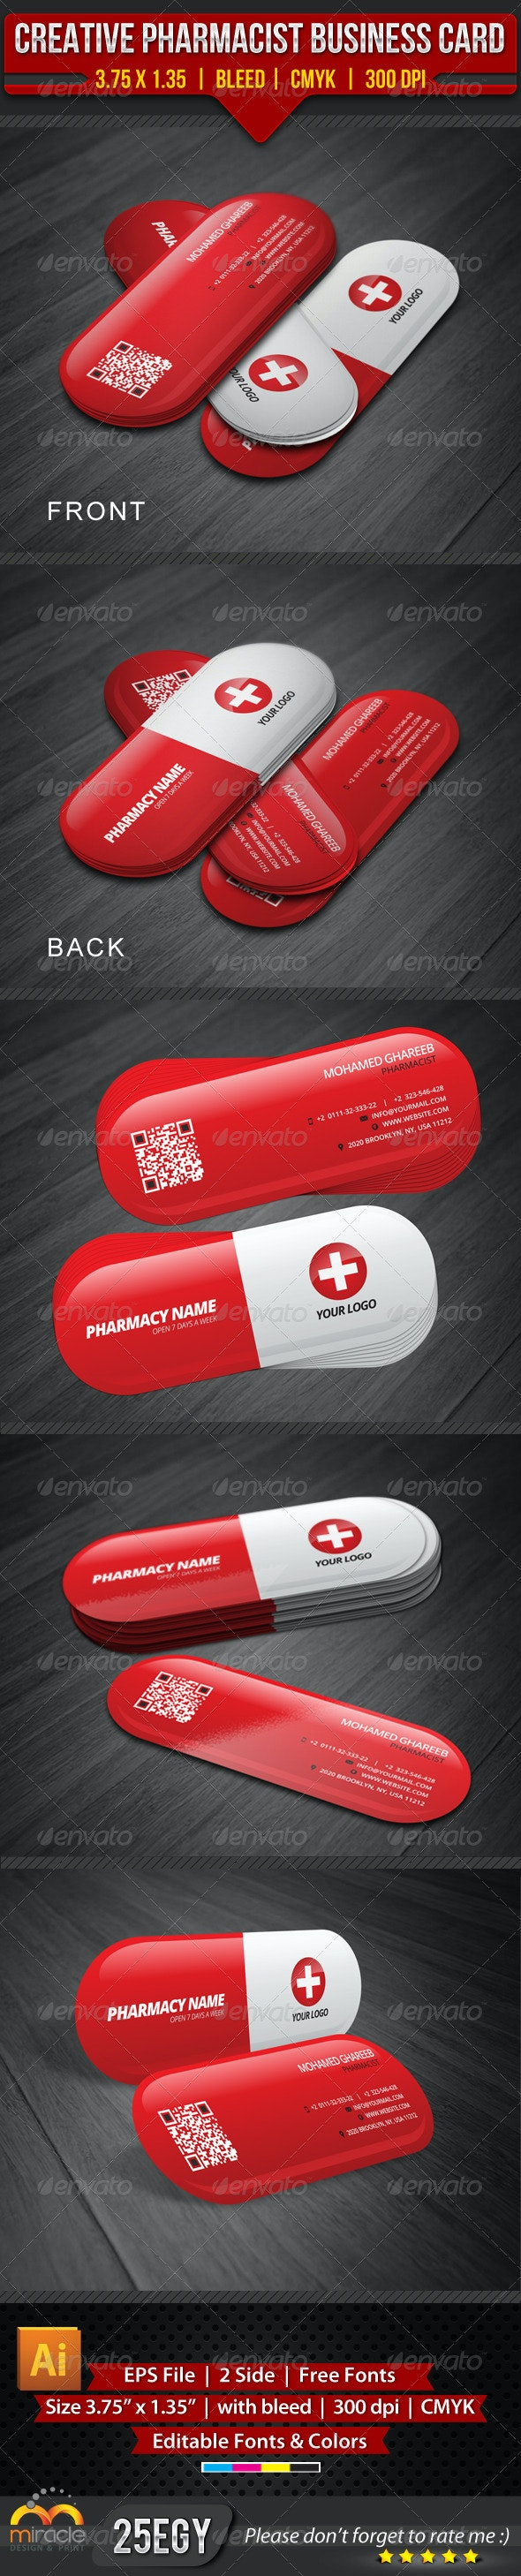 Creative Pharmacist Business Card - Industry Specific Business Cards